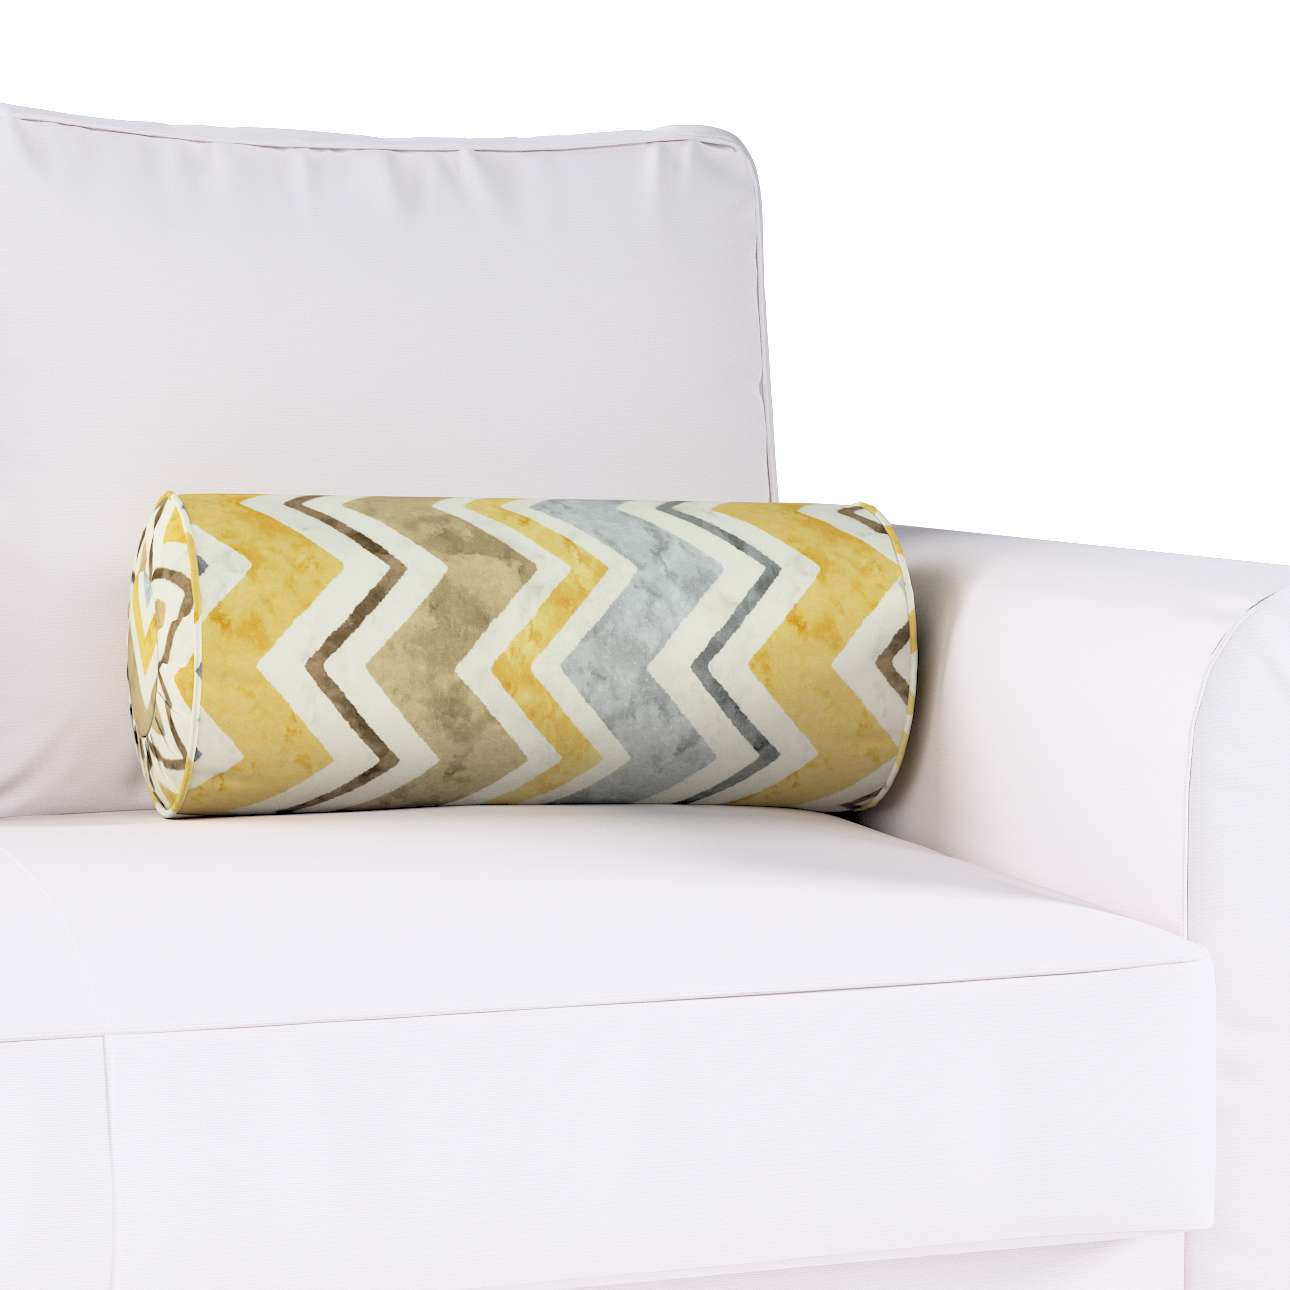 Bolster cushion with pleats Ø 20 × 50 cm (8 × 20 inch) in collection Acapulco, fabric: 141-39